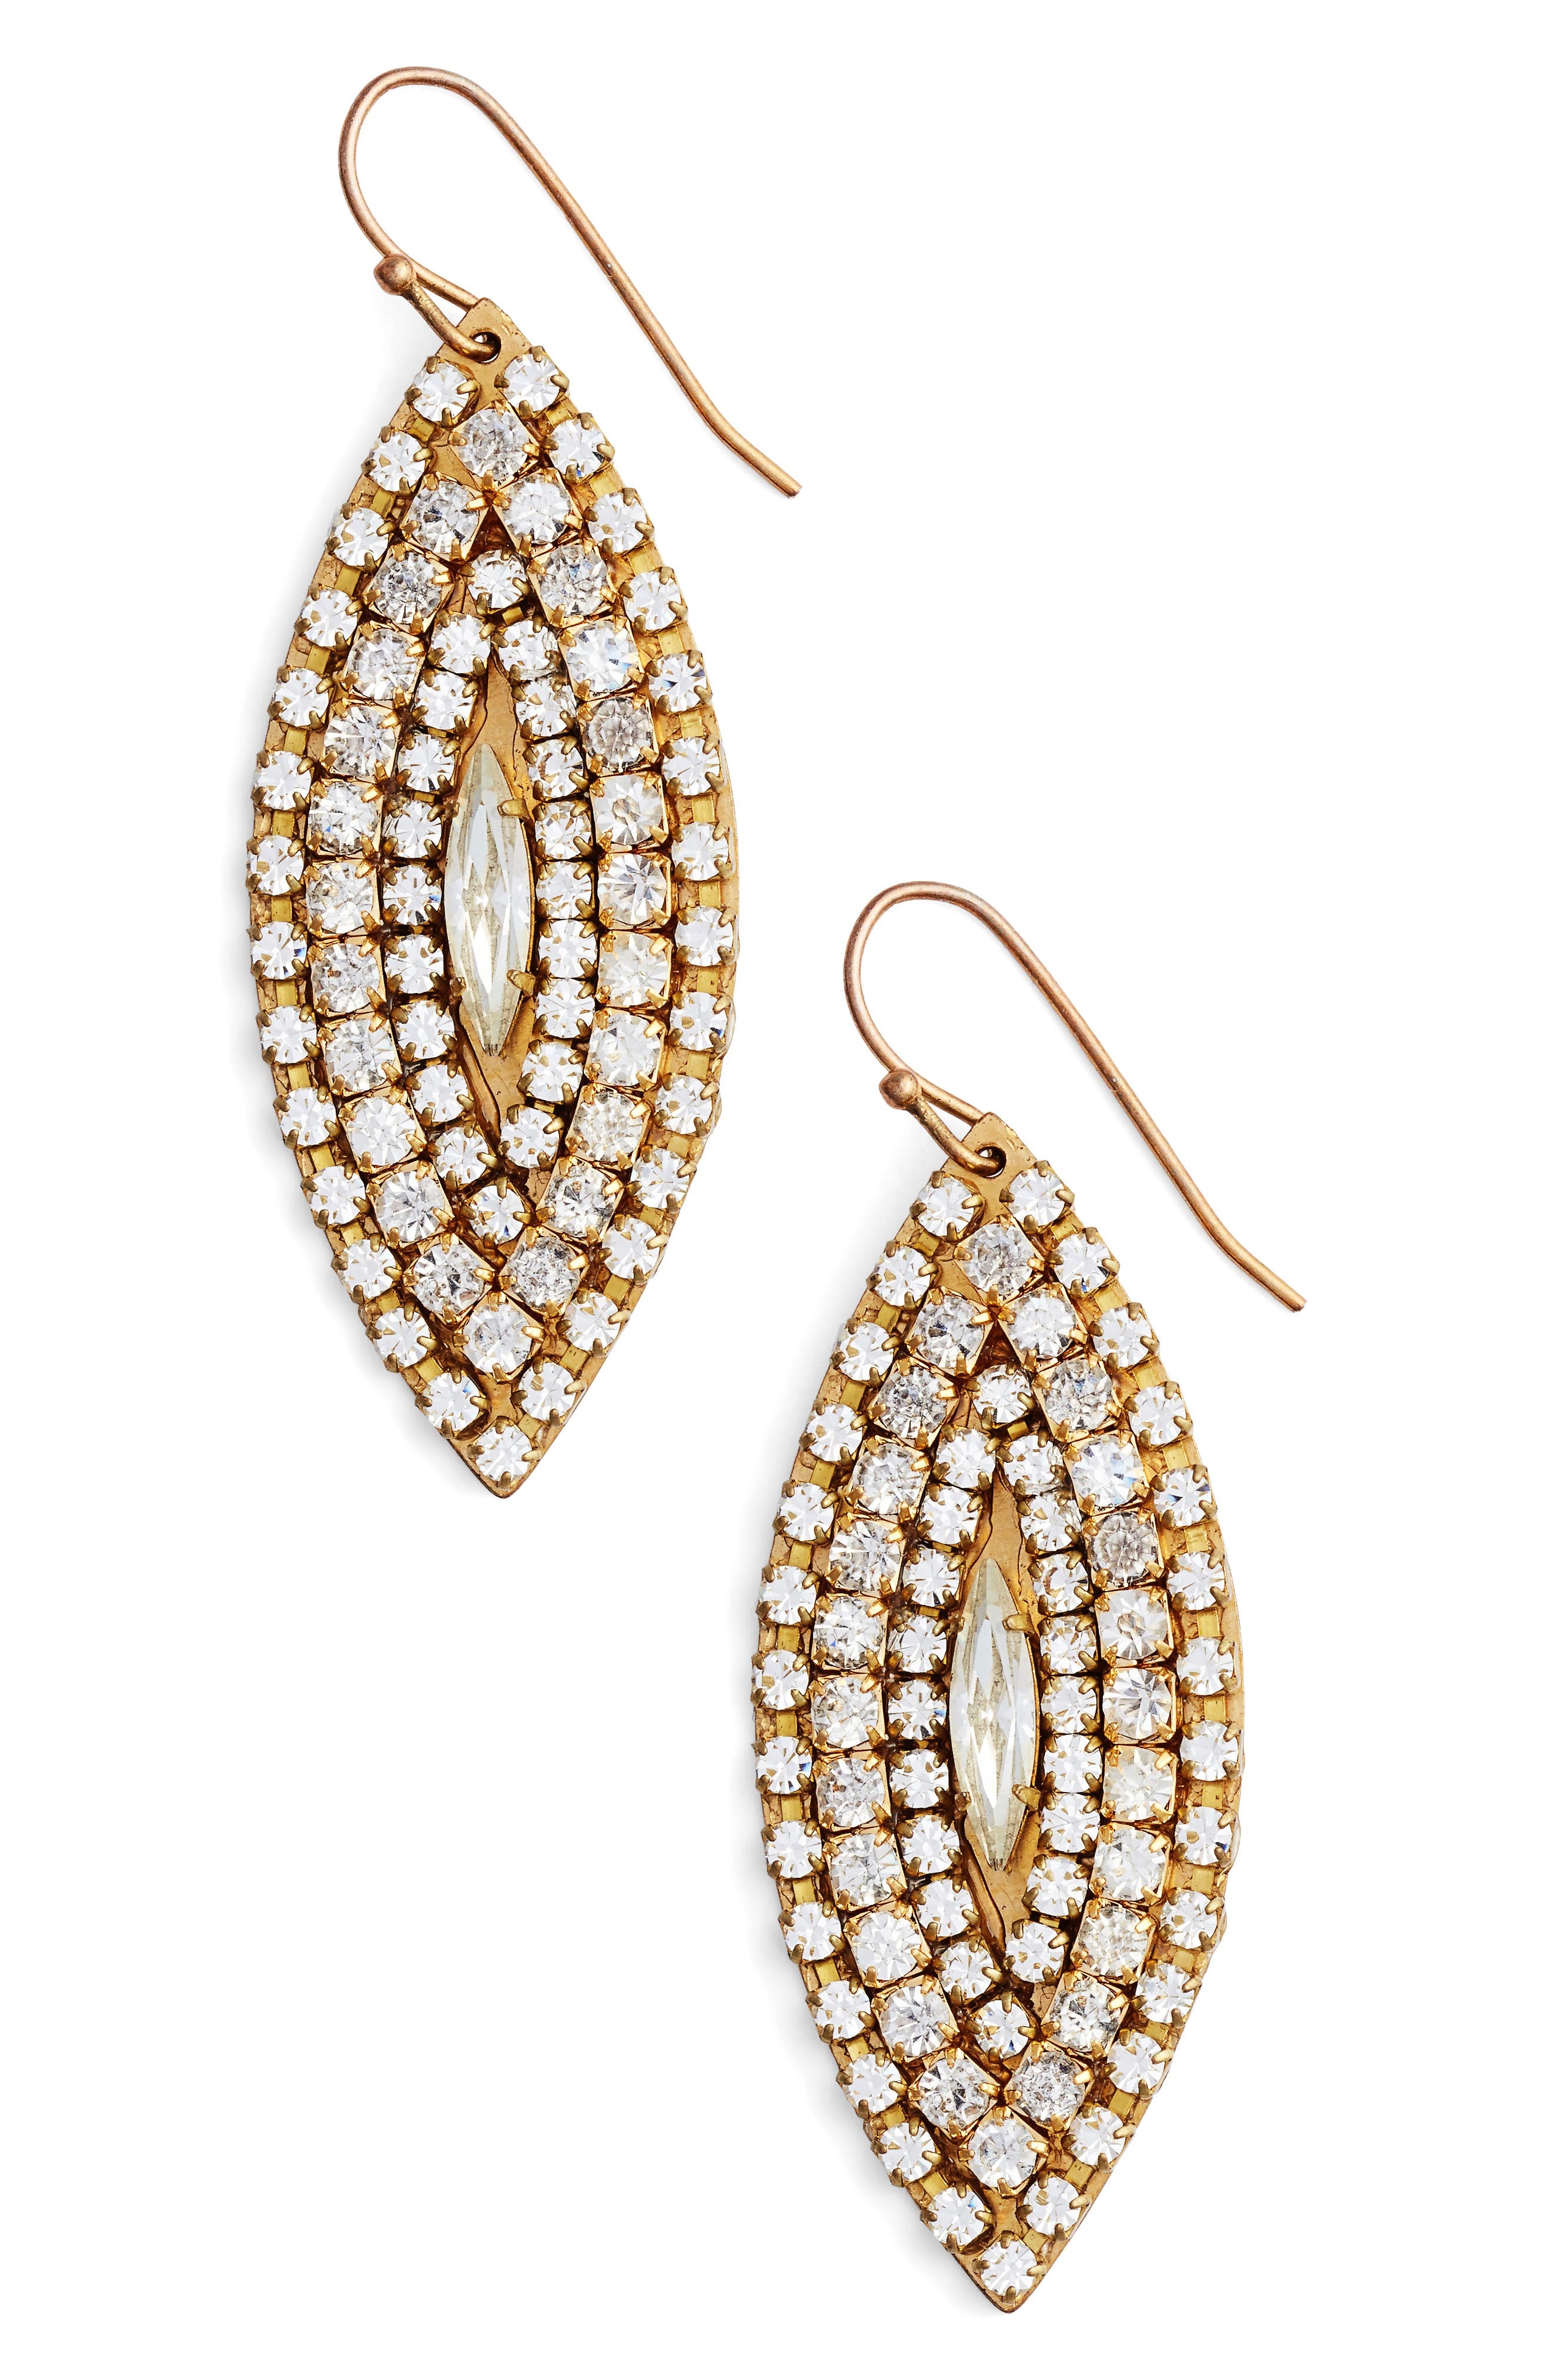 Marquise Statement Earrings,                             Main thumbnail 1, color,                             Gold/ Crystal